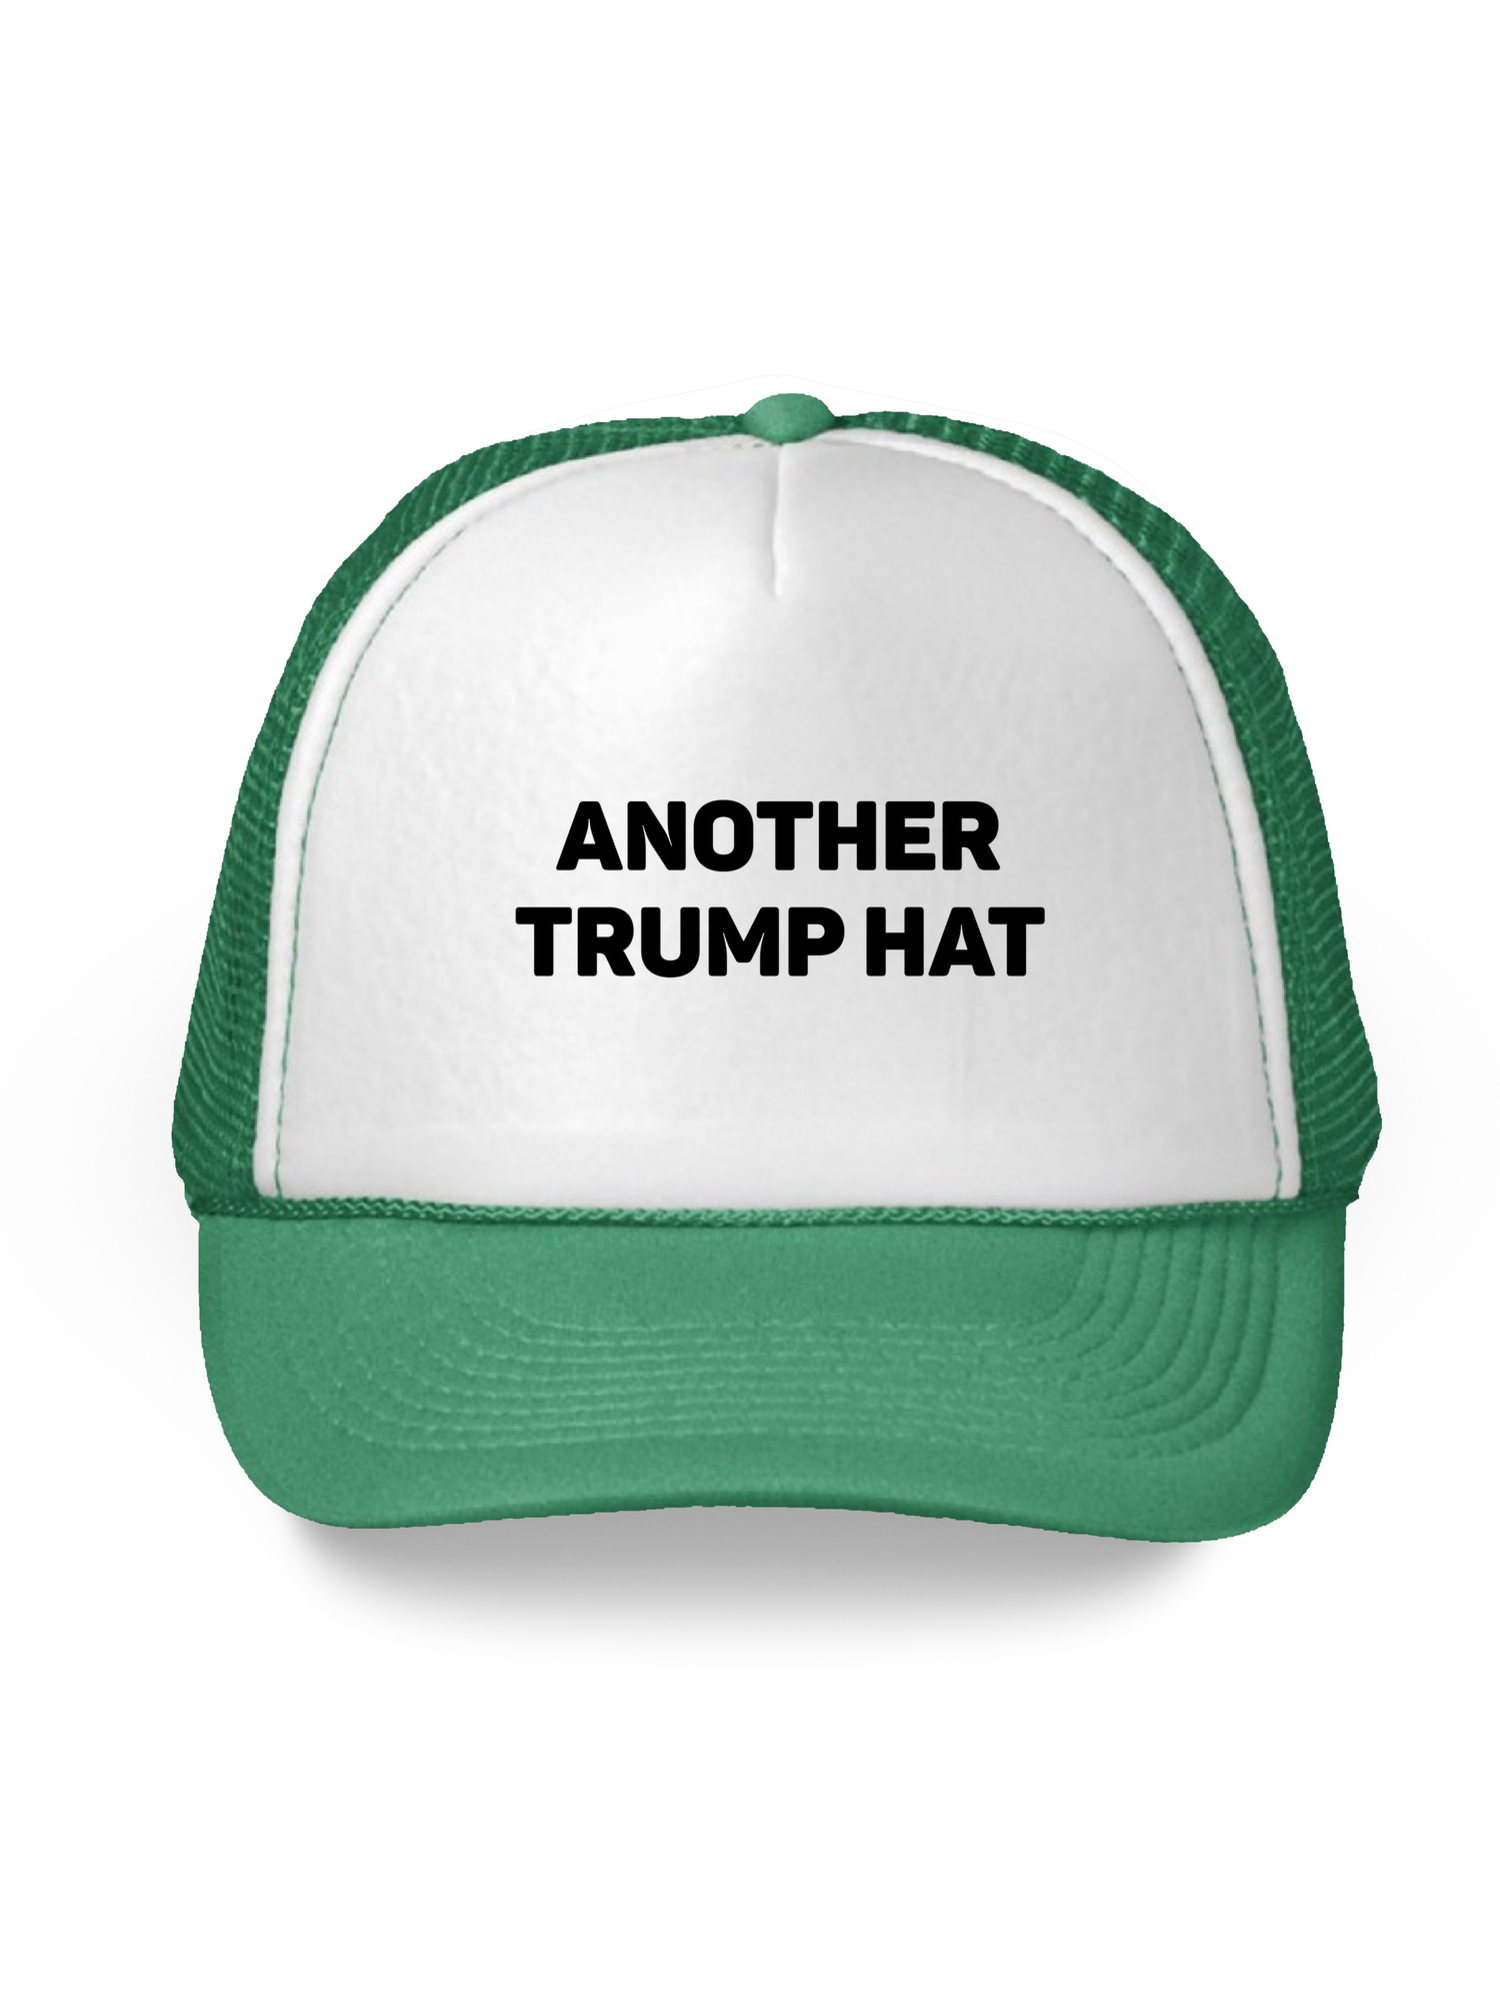 Awkward Styles Another Trump Hat Funny Trump Trucker Hats President Trump  Gifts Republican Campaign Hats Keep America Great Trump 2020 Snapback Hats  ... f344ee894ca